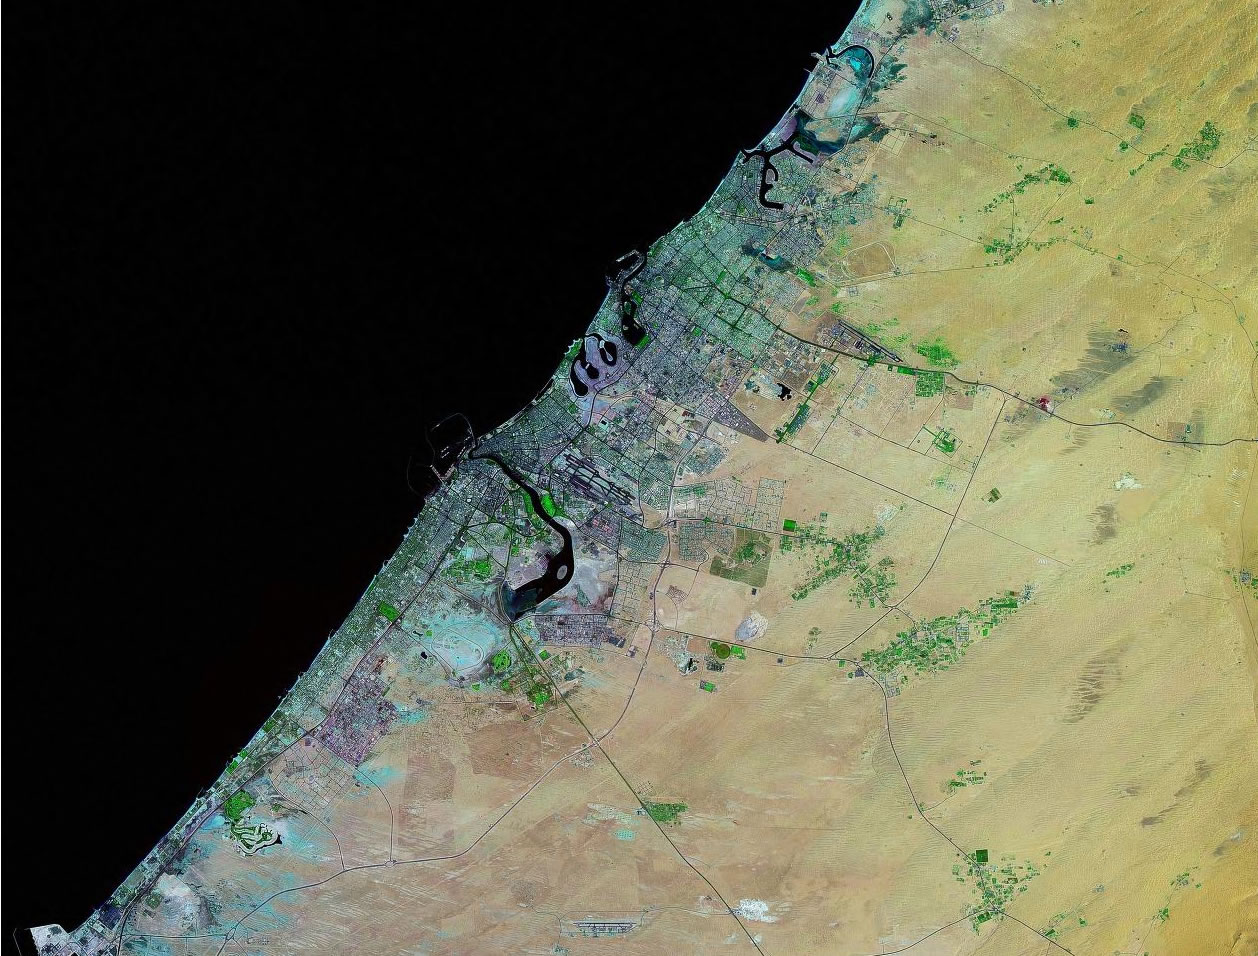 Dubai United Arab Emirates satellite image map